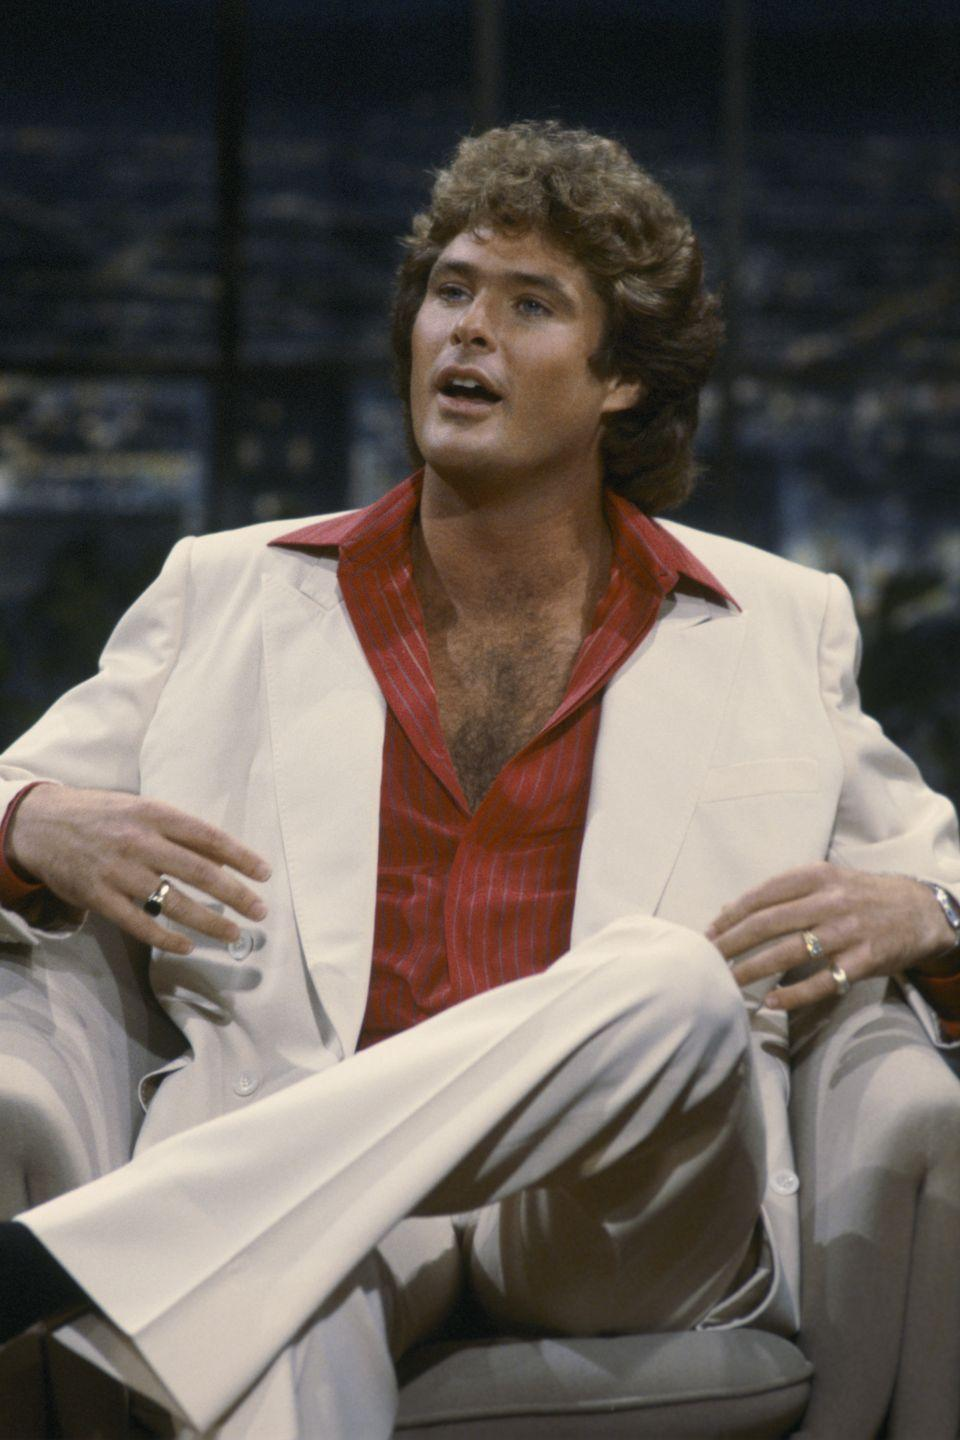 <p>You could say that David Hasselhoff is the godfather of hairy chests. In the '80s, the actor made the open collar look his signature on shows like <em>Knight Rider </em>and <em>Baywatch</em>. </p>